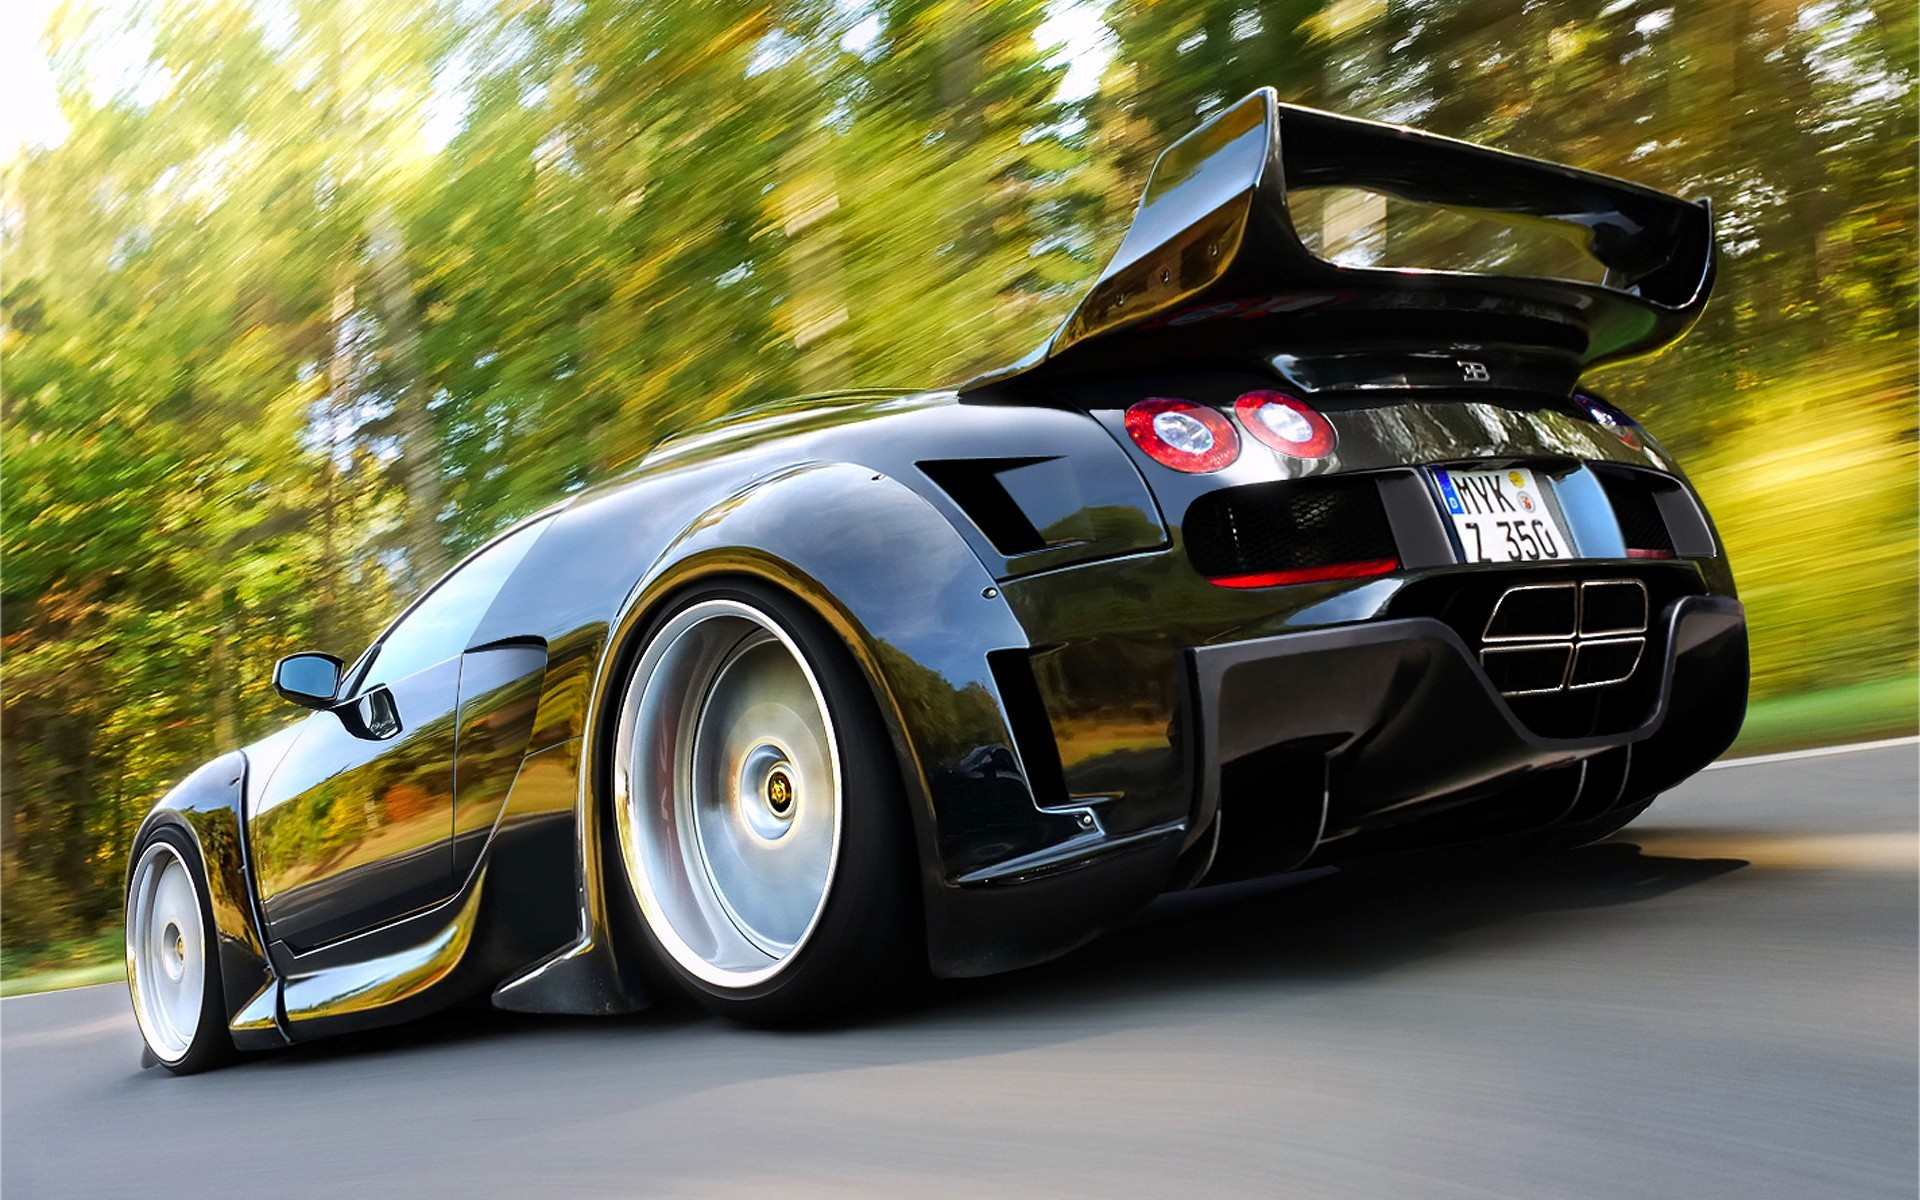 cars bugatti veyron vehicles HD Wallpaper